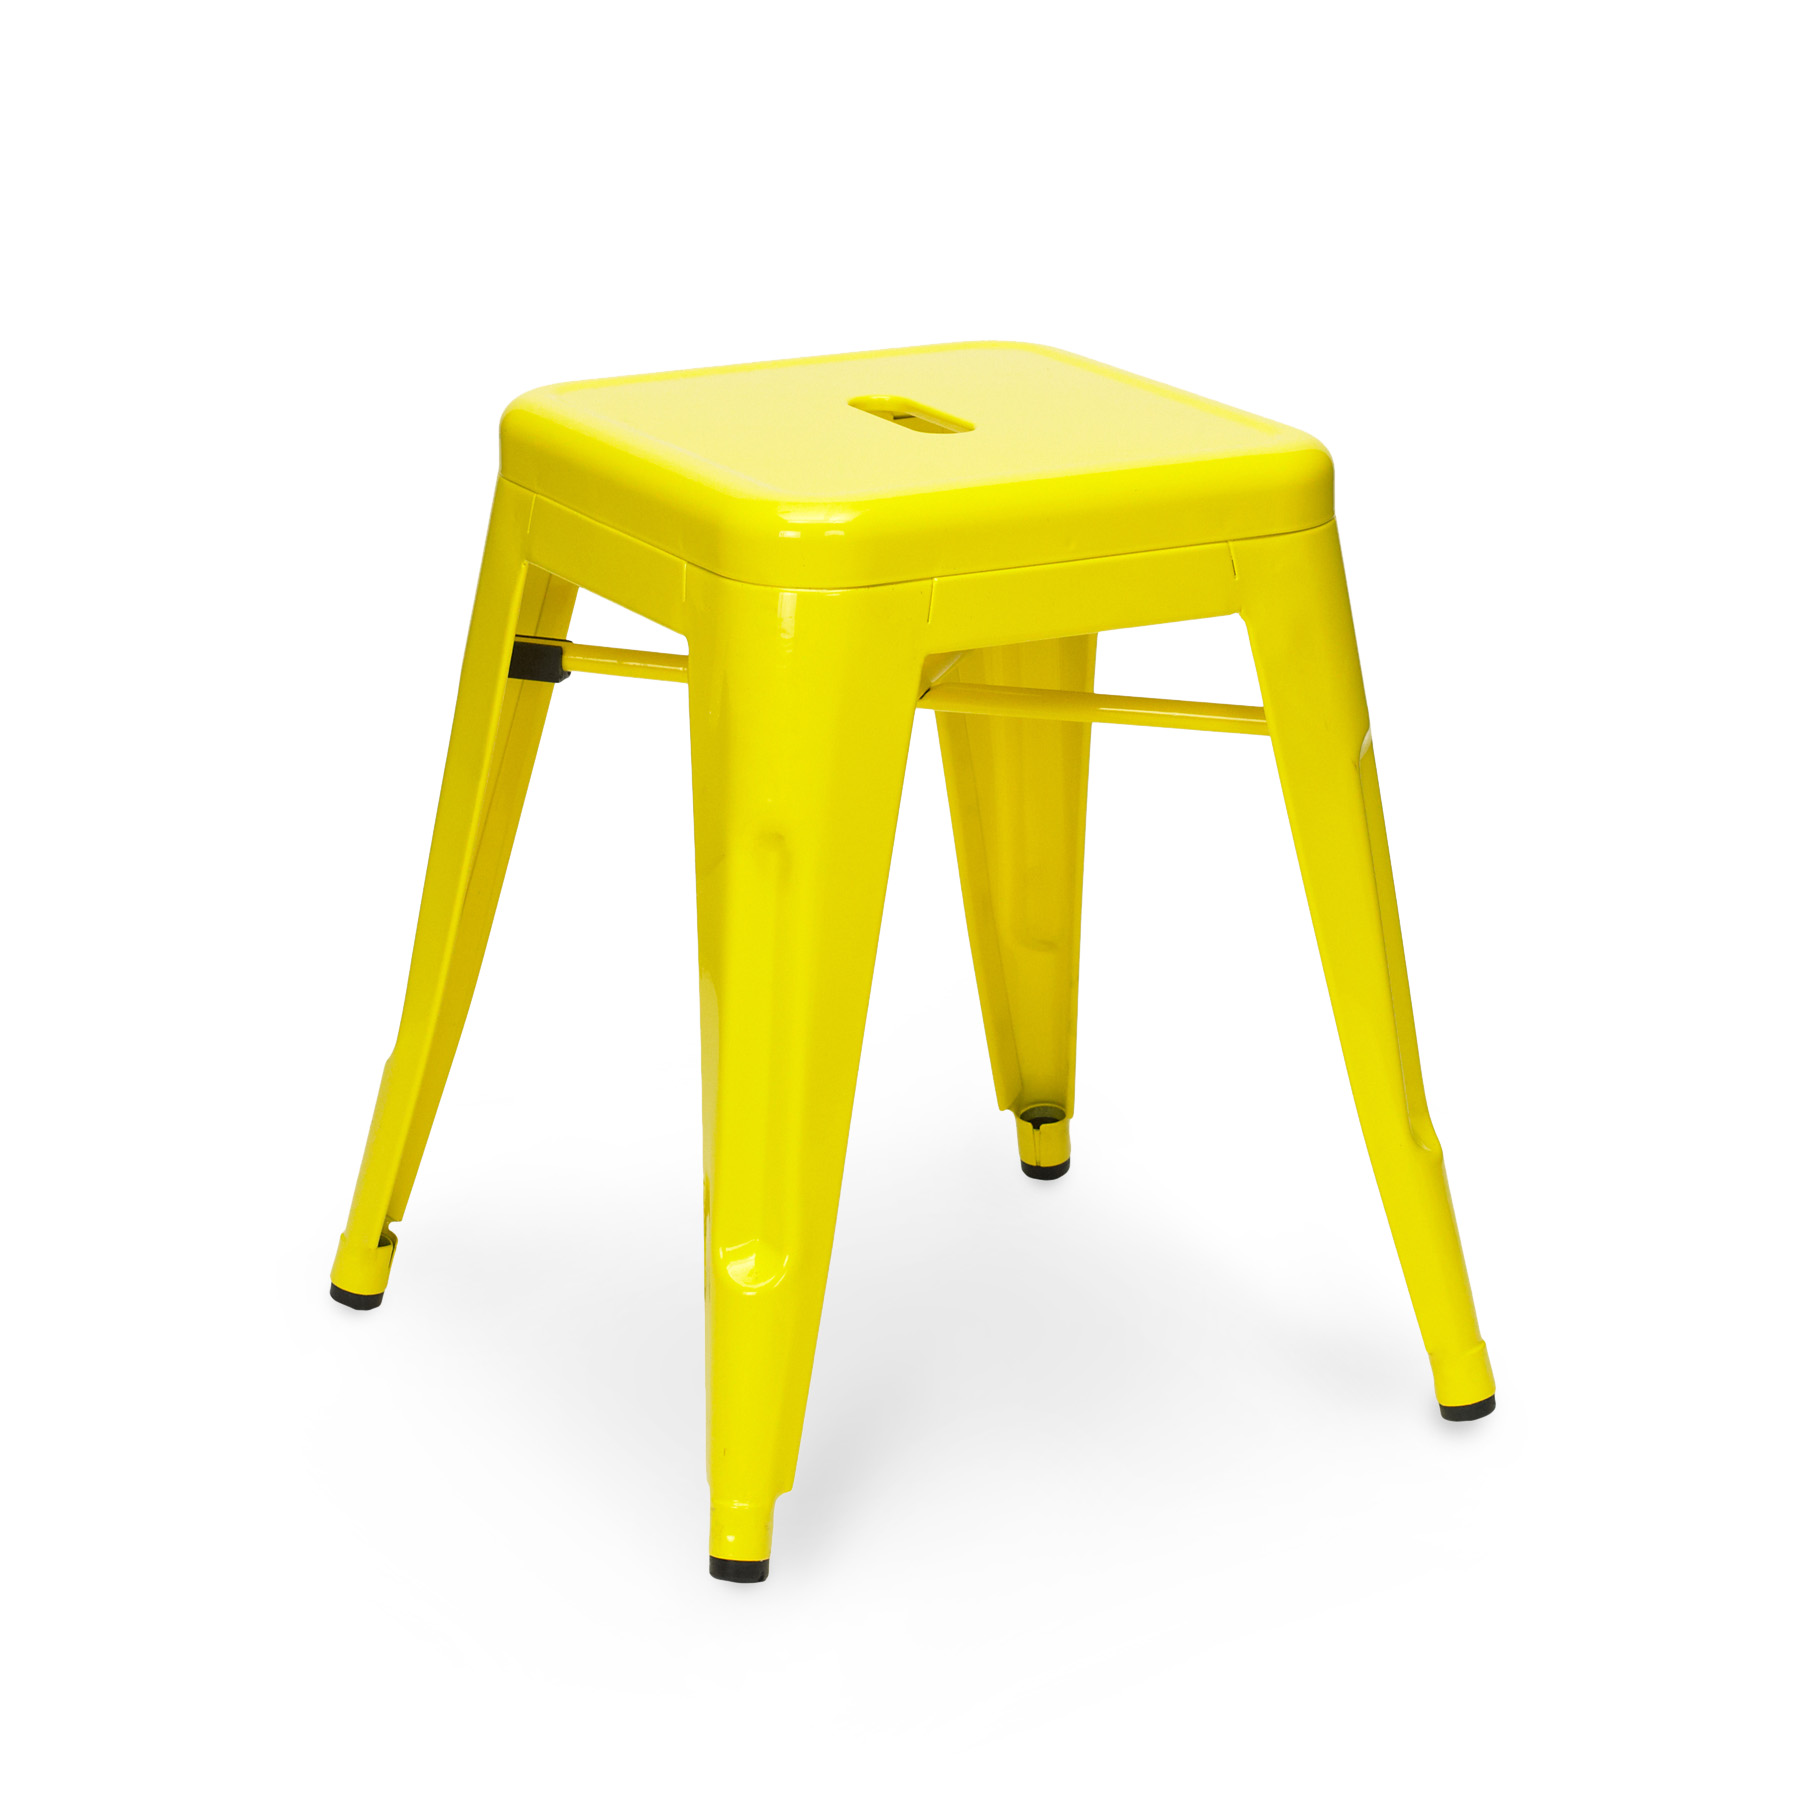 Funky Furniture Ottawa Product Categories Mikaza Meubles Modernes Montreal